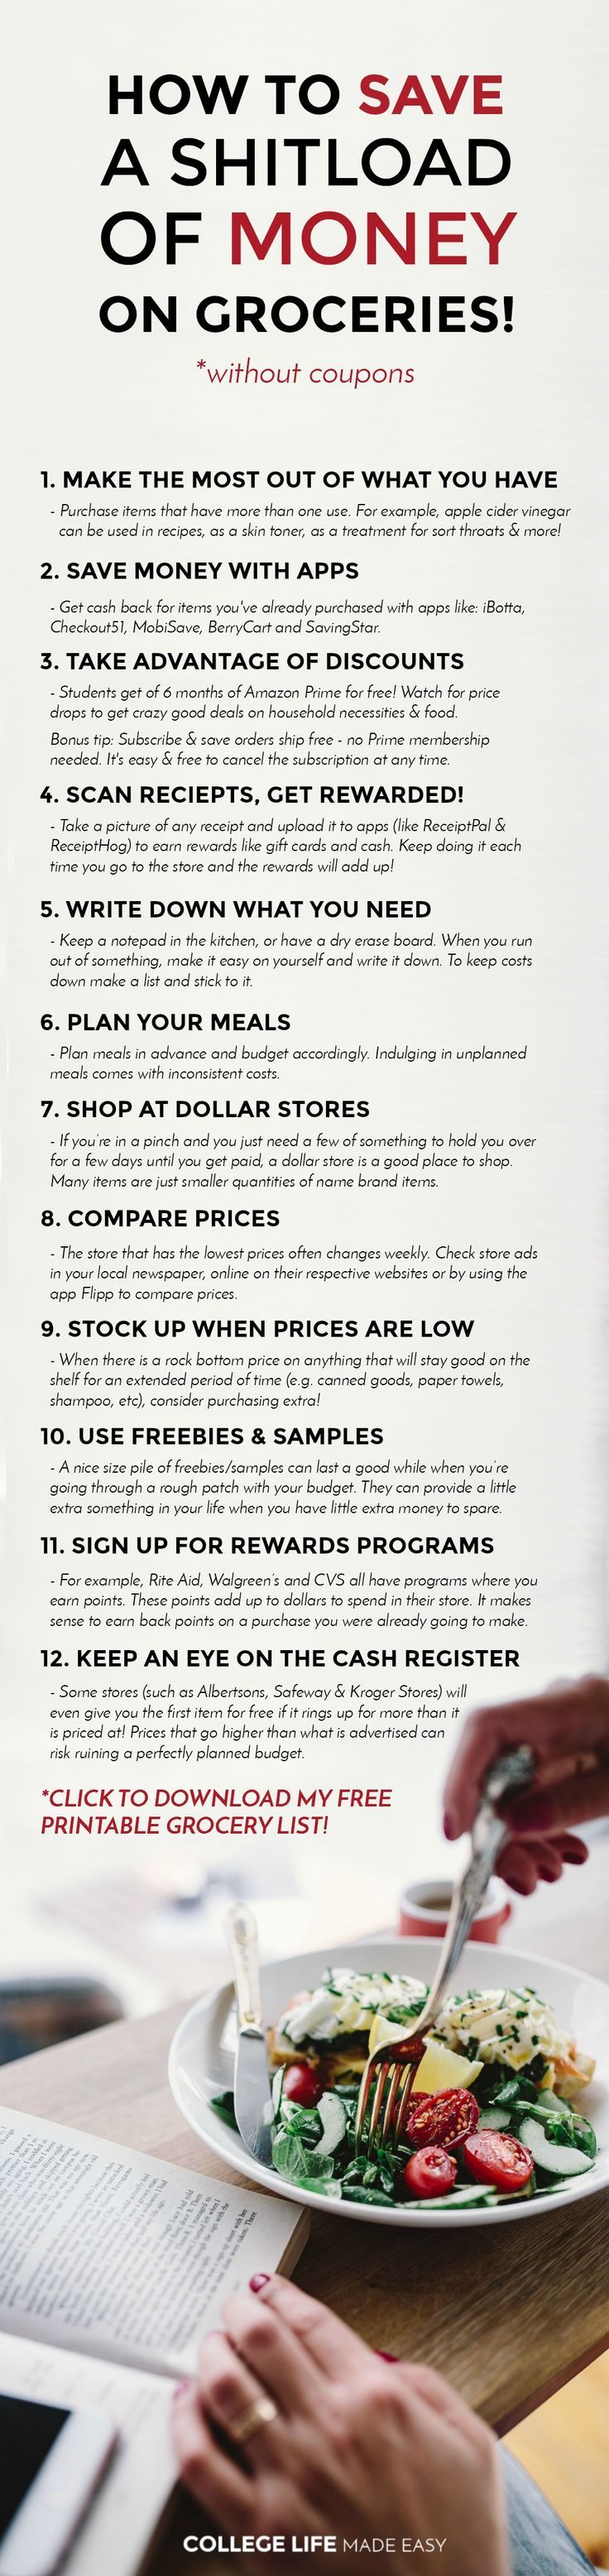 12 Ways to Save Money on Groceries! (Without Coupons) | Free Printable Grocery List | Frugal Living | Budget Grocery Shopping | Tips Tricks Hacks | How to Save Money on Groceries without coupons | Free Printable Shopping Lists | Apps | College Grocery List on a Budget | Easy Cheap Healthy | No coupons | via @esycollegelife